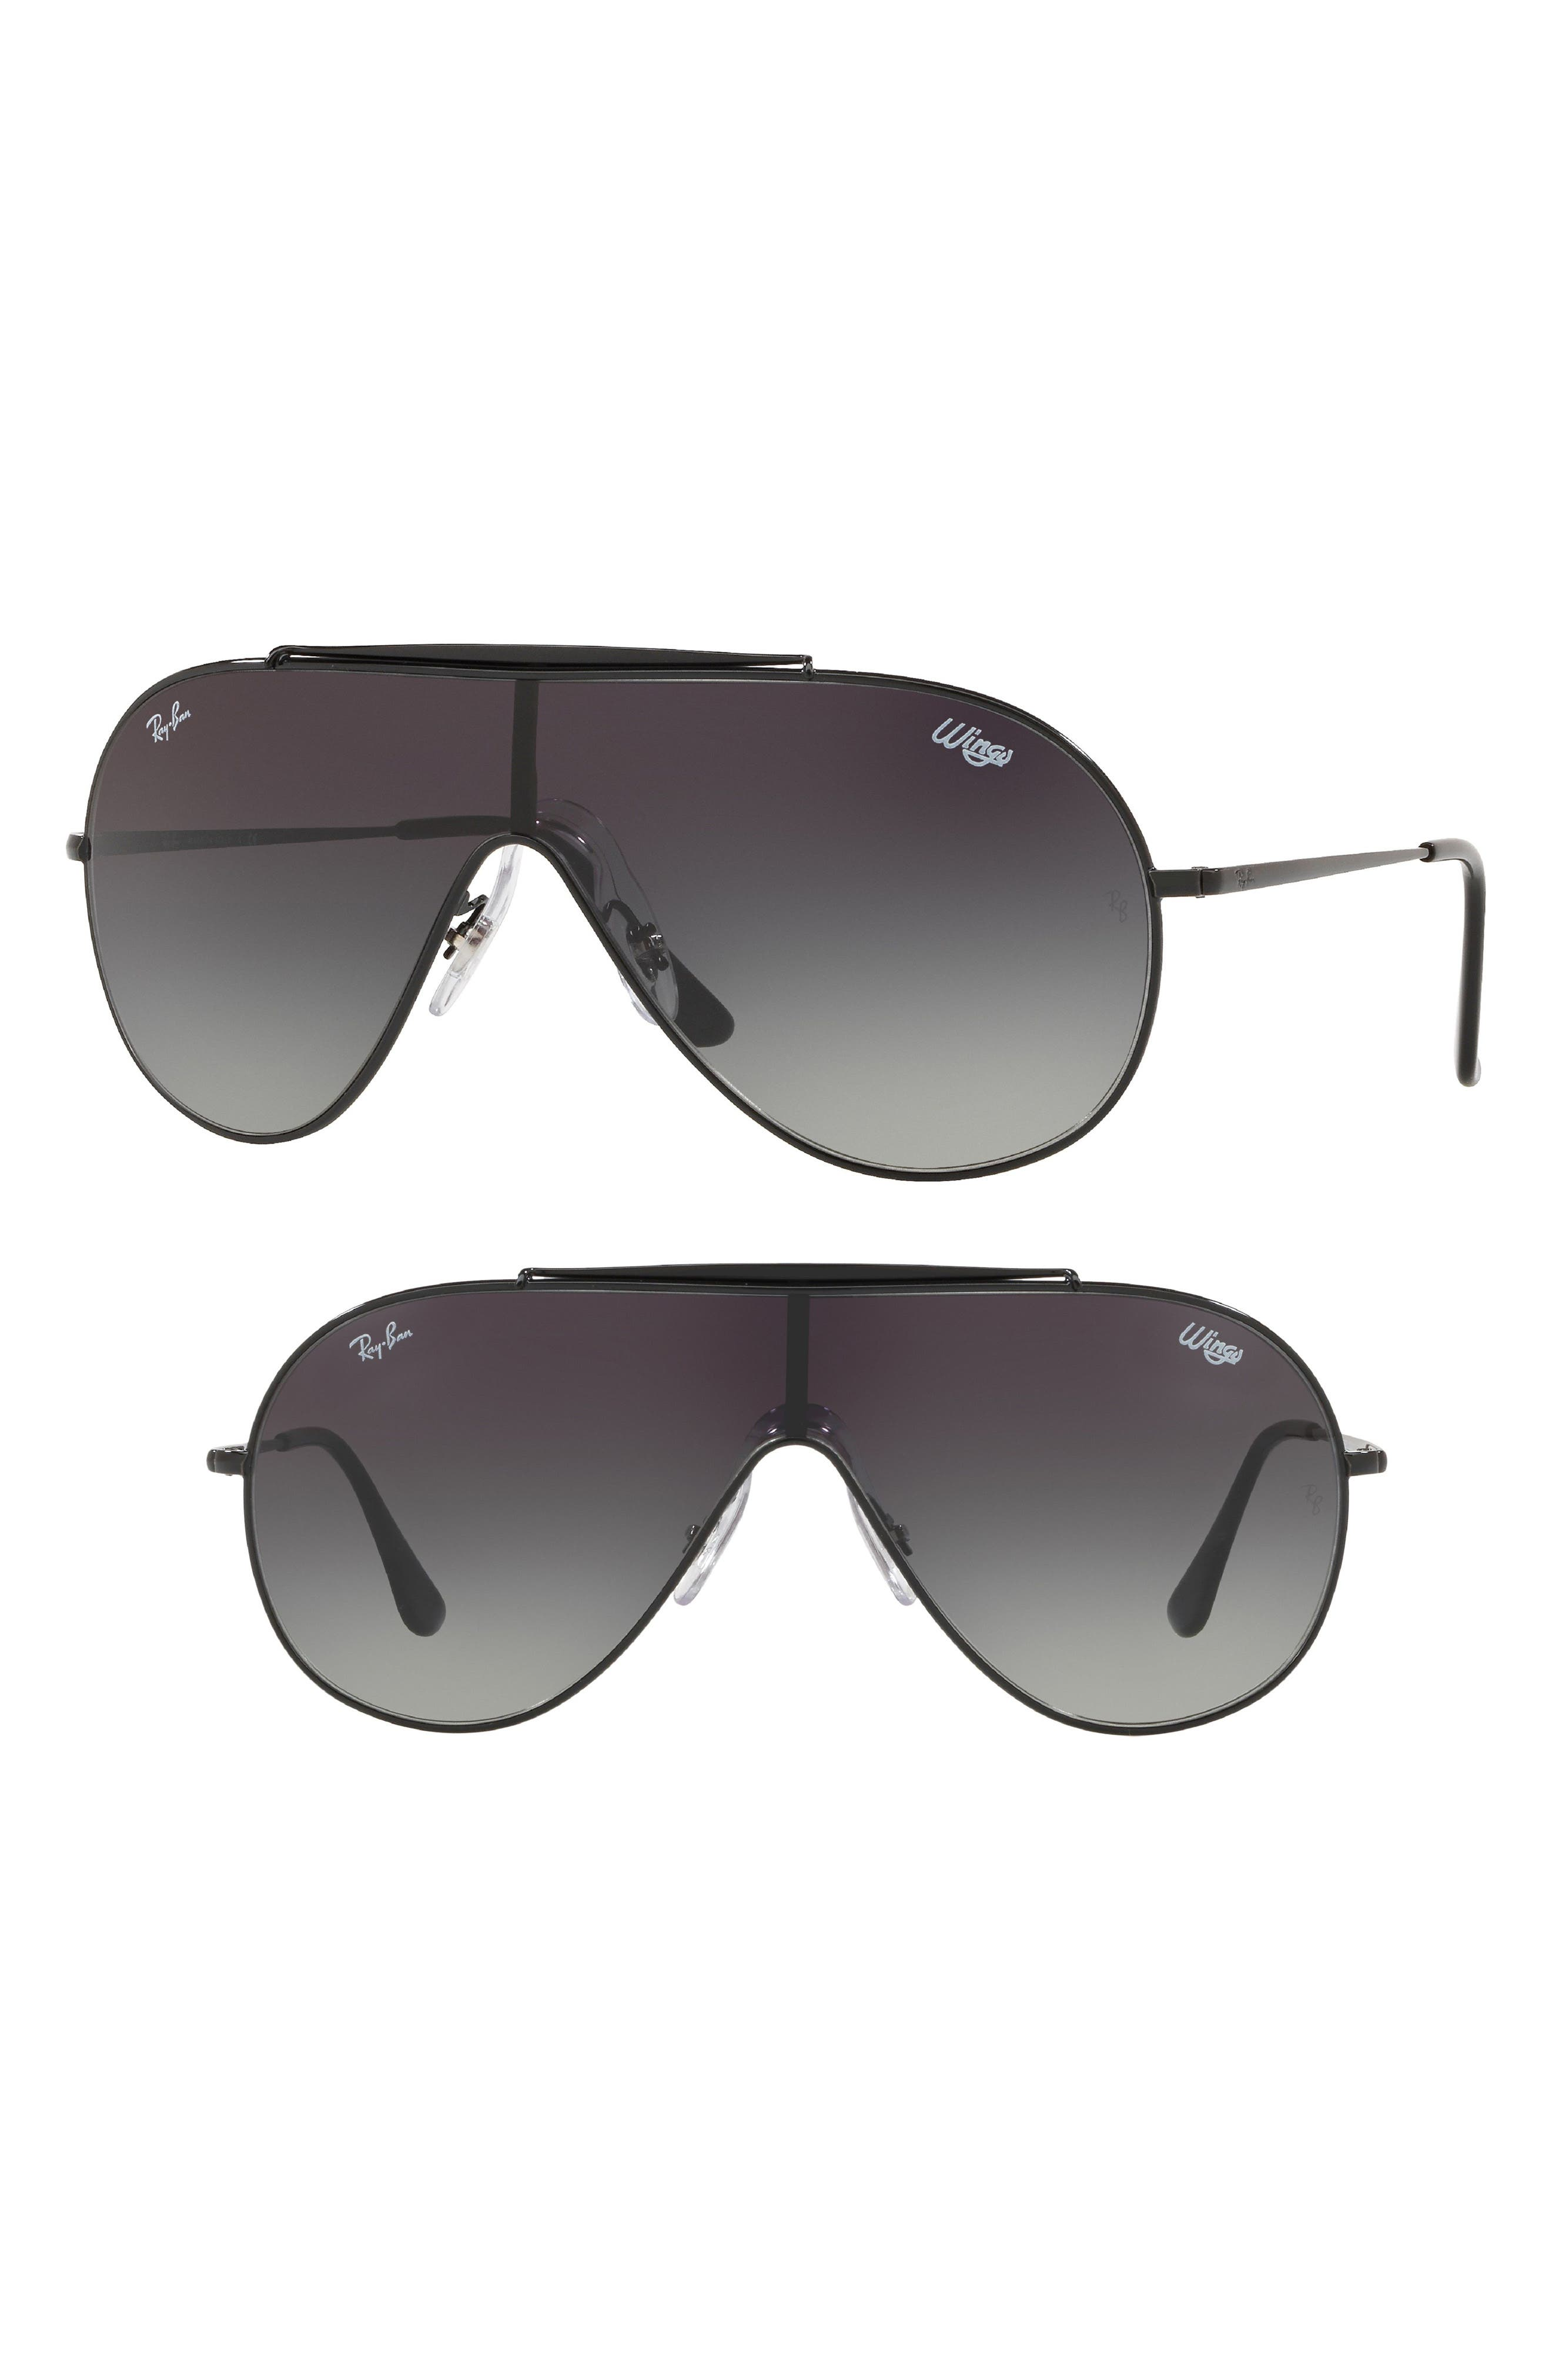 133mm Shield Sunglasses,                             Main thumbnail 1, color,                             001